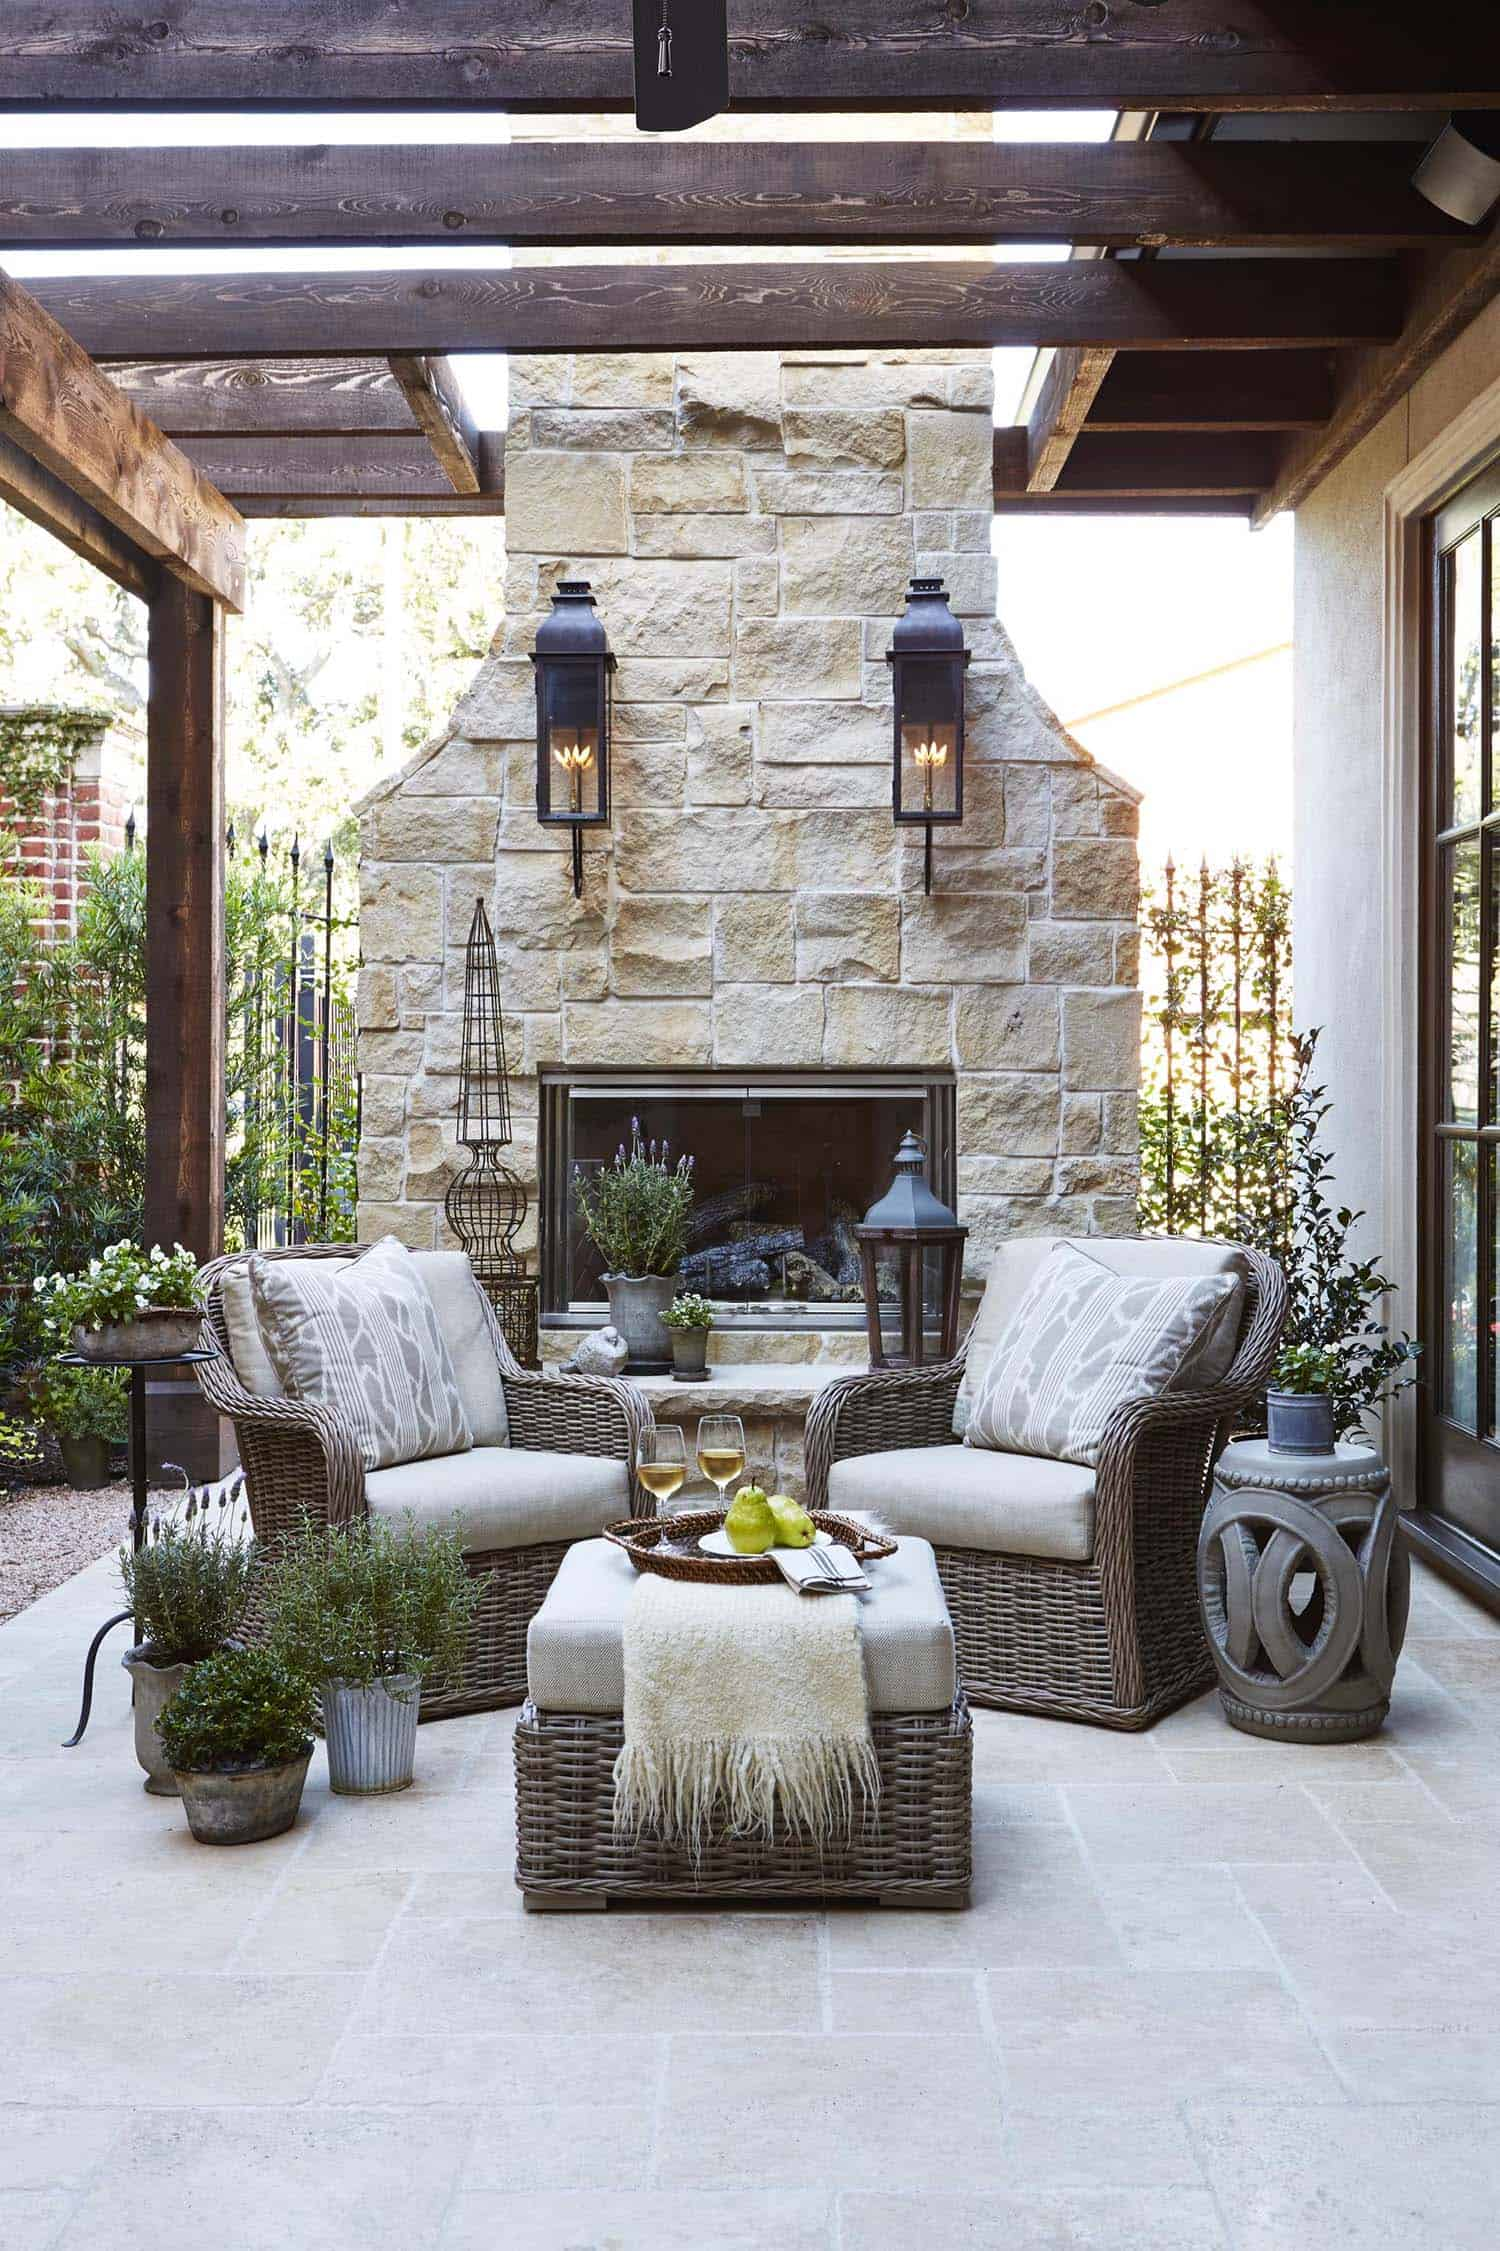 30+ Irresistible outdoor fireplace ideas that will leave ... on Outdoor Kitchen And Fireplace Ideas id=12823